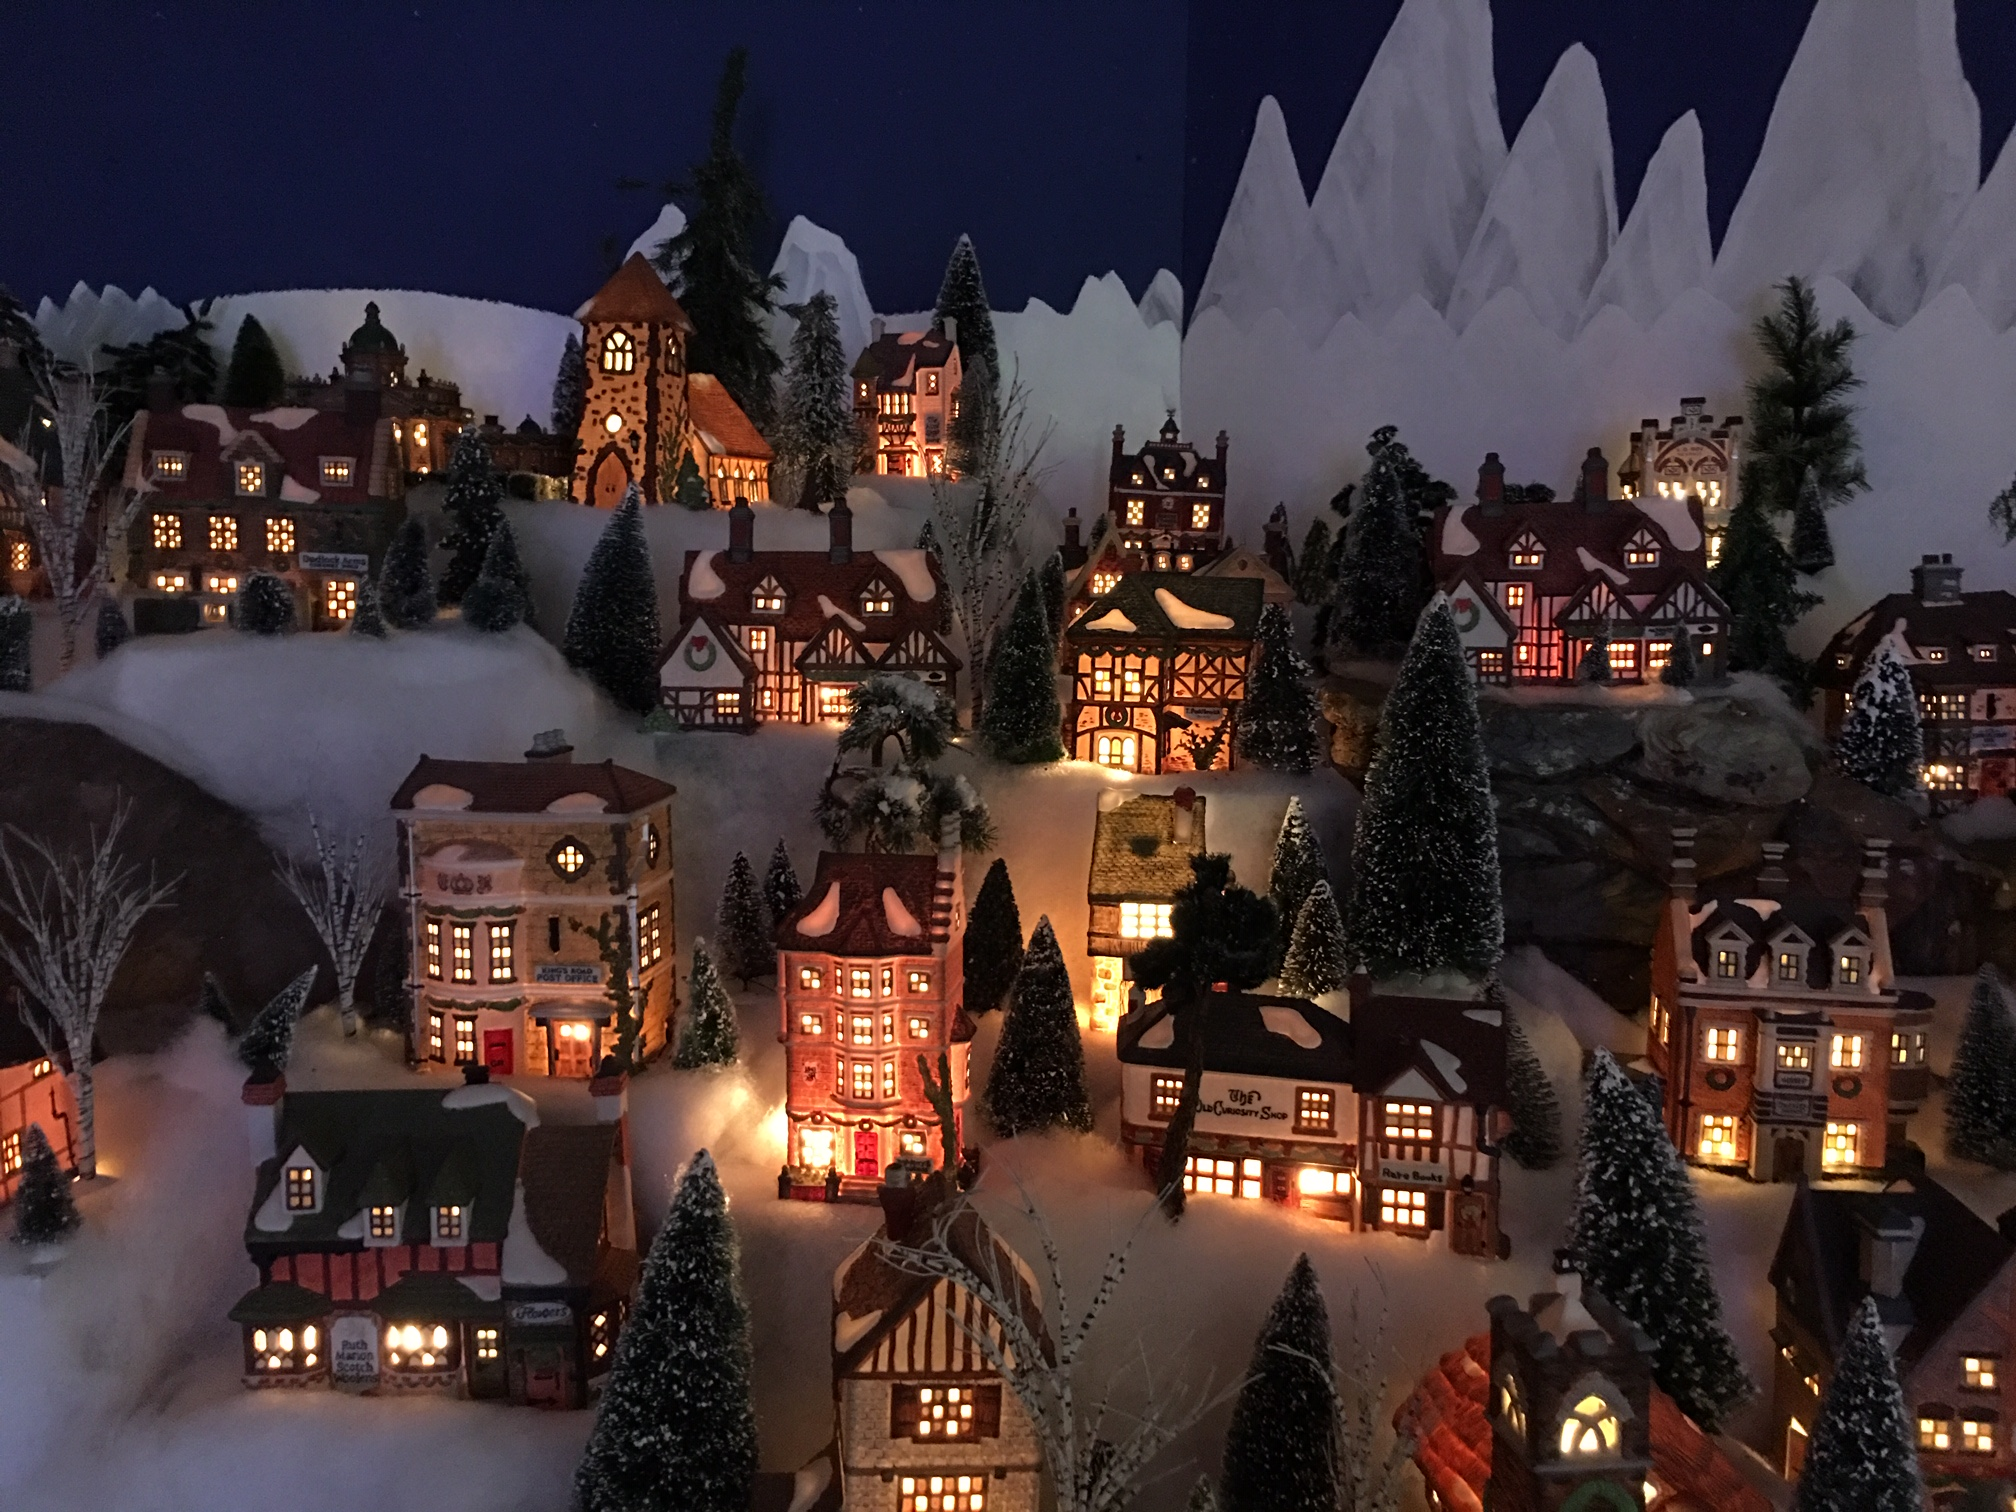 Enchanted Christmas Village 2020 Enchanted Christmas | Indoor Tour of Lights